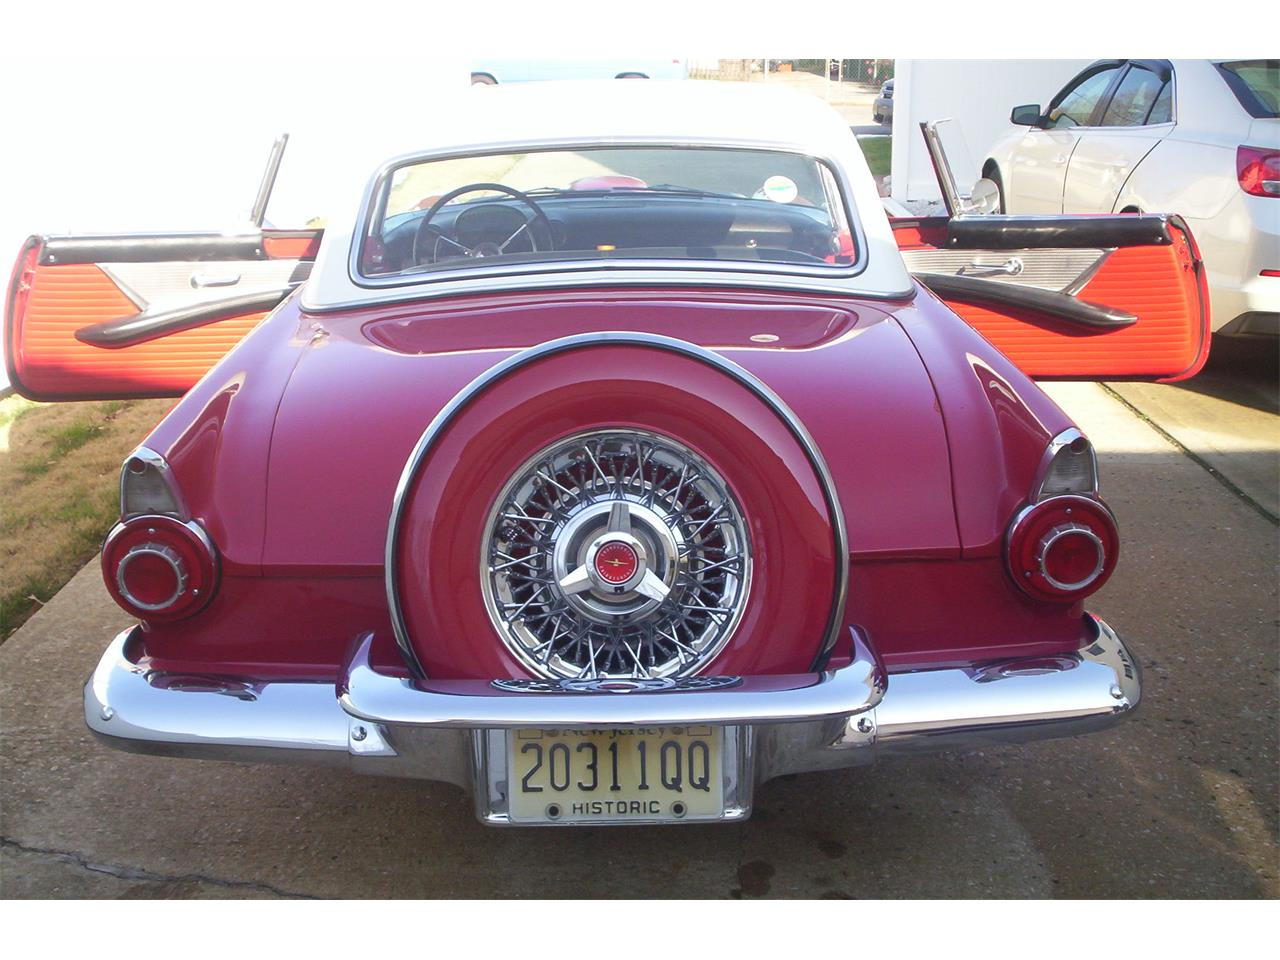 Large Picture of Classic '56 Ford Thunderbird - $42,950.00 - IBM5